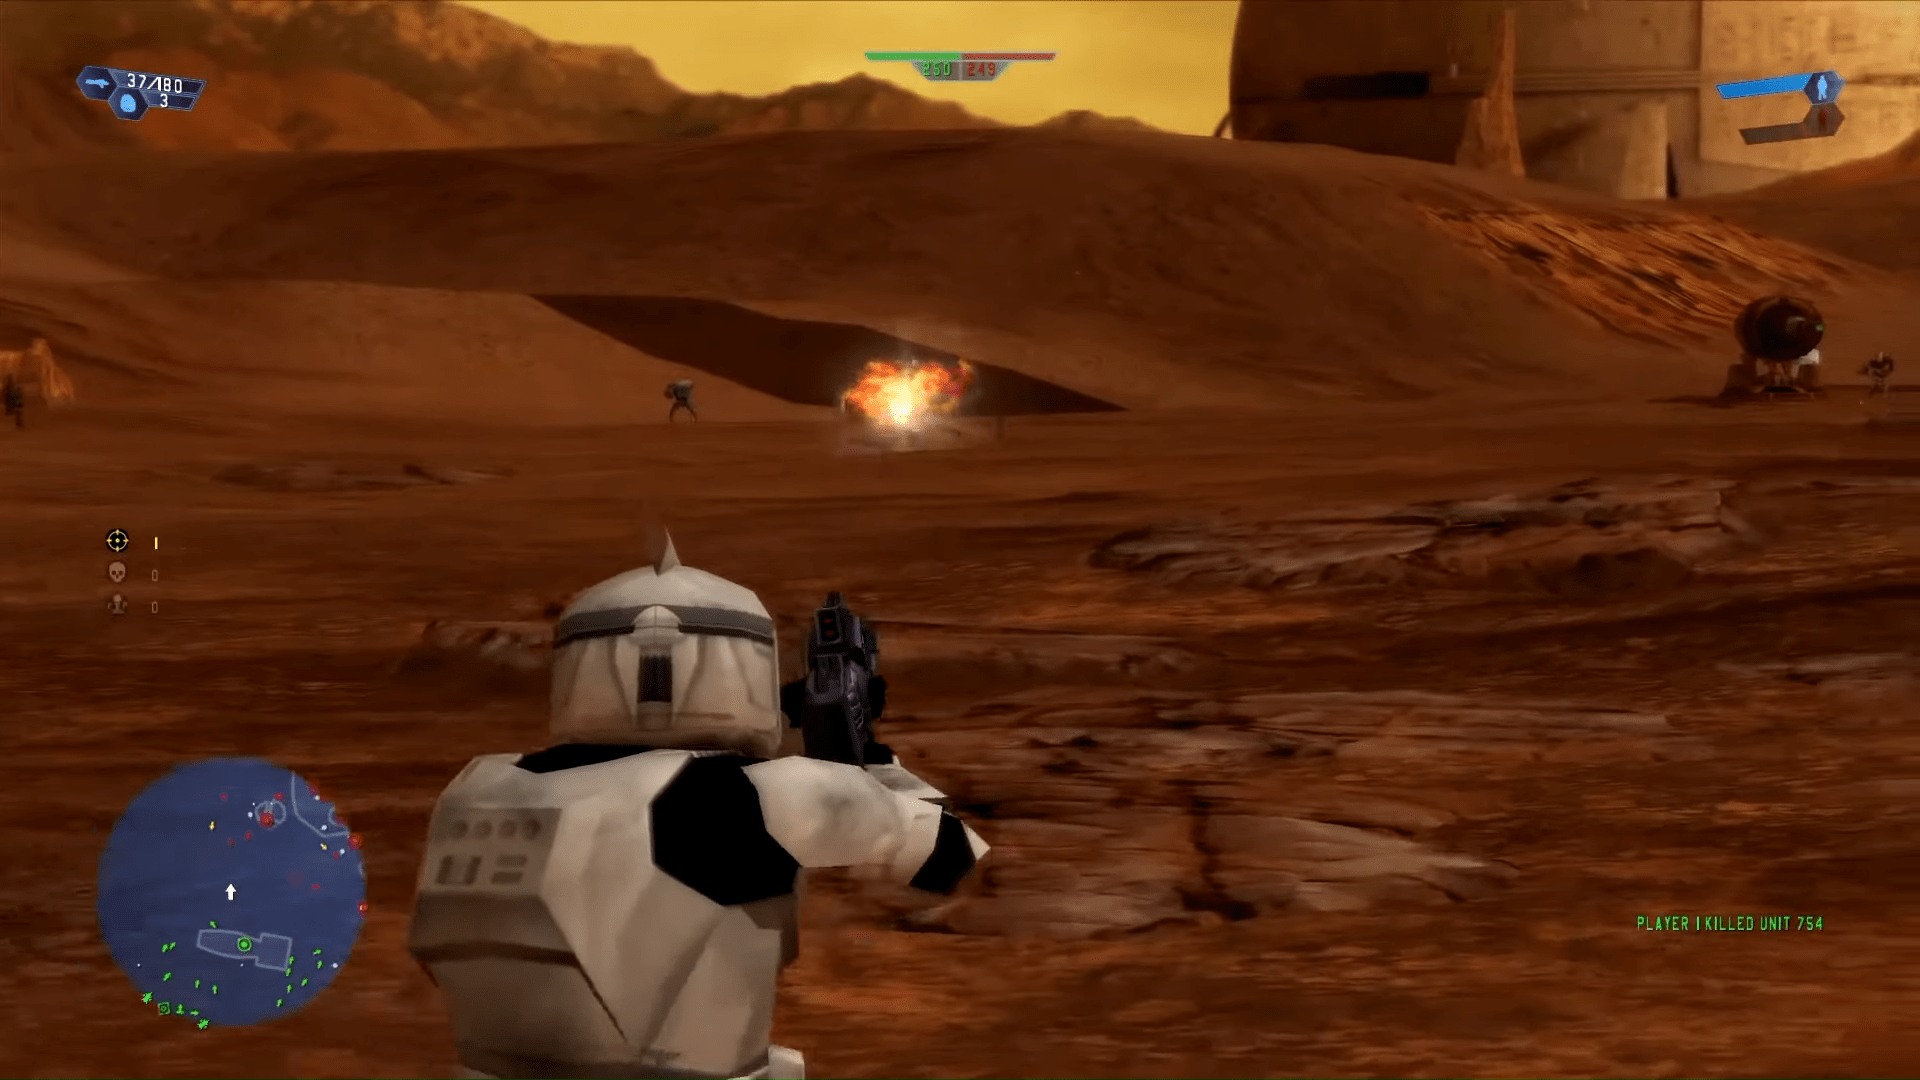 Relive Star Wars Nostalgia With The Classic 2004 Star Wars Battlefront As Part Of Xbox February Games With Gold Happy Gamer